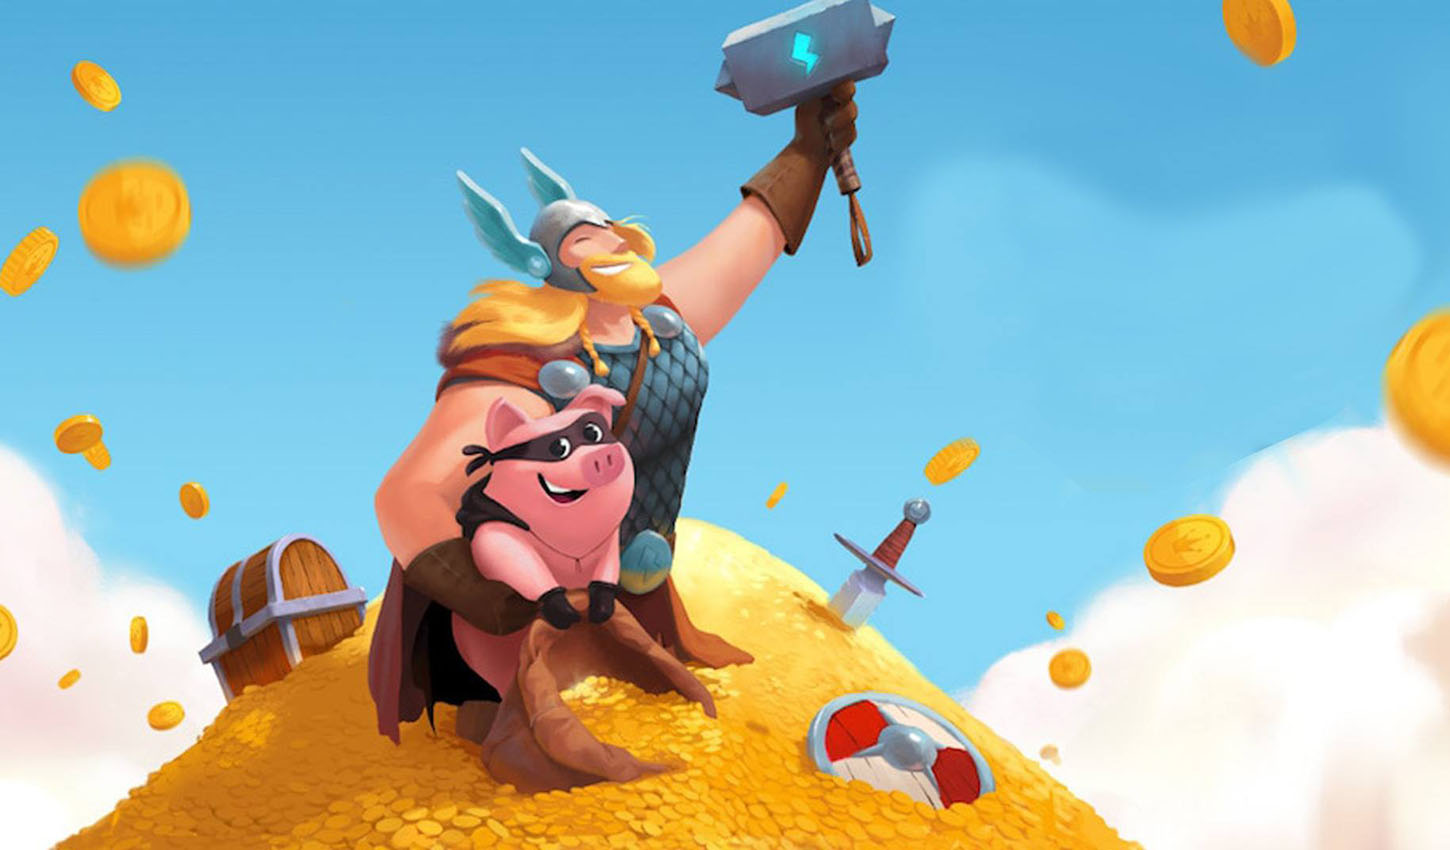 Coin Master MOD APK 3.5.340 (Unlimited Coins/Spin)